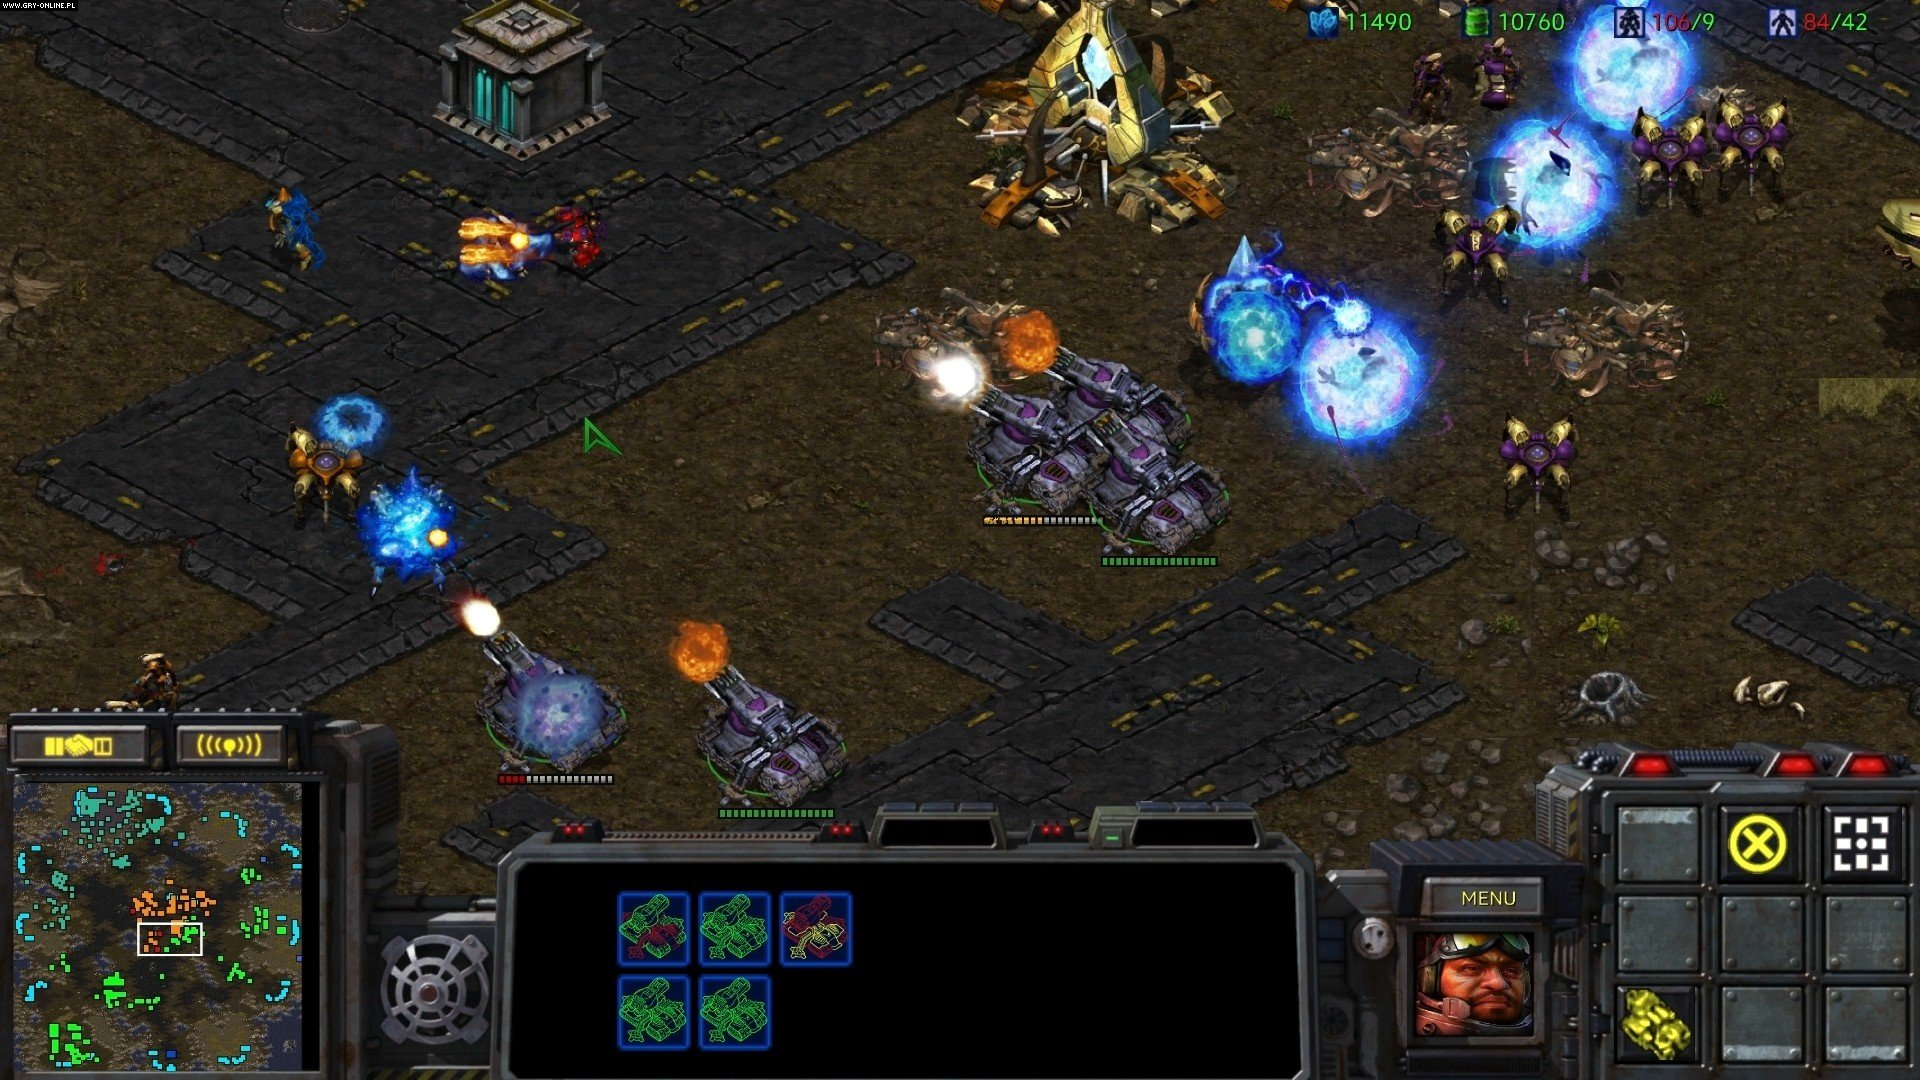 StarCraft: Remastered PC Games Image 5/15, Blizzard Entertainment